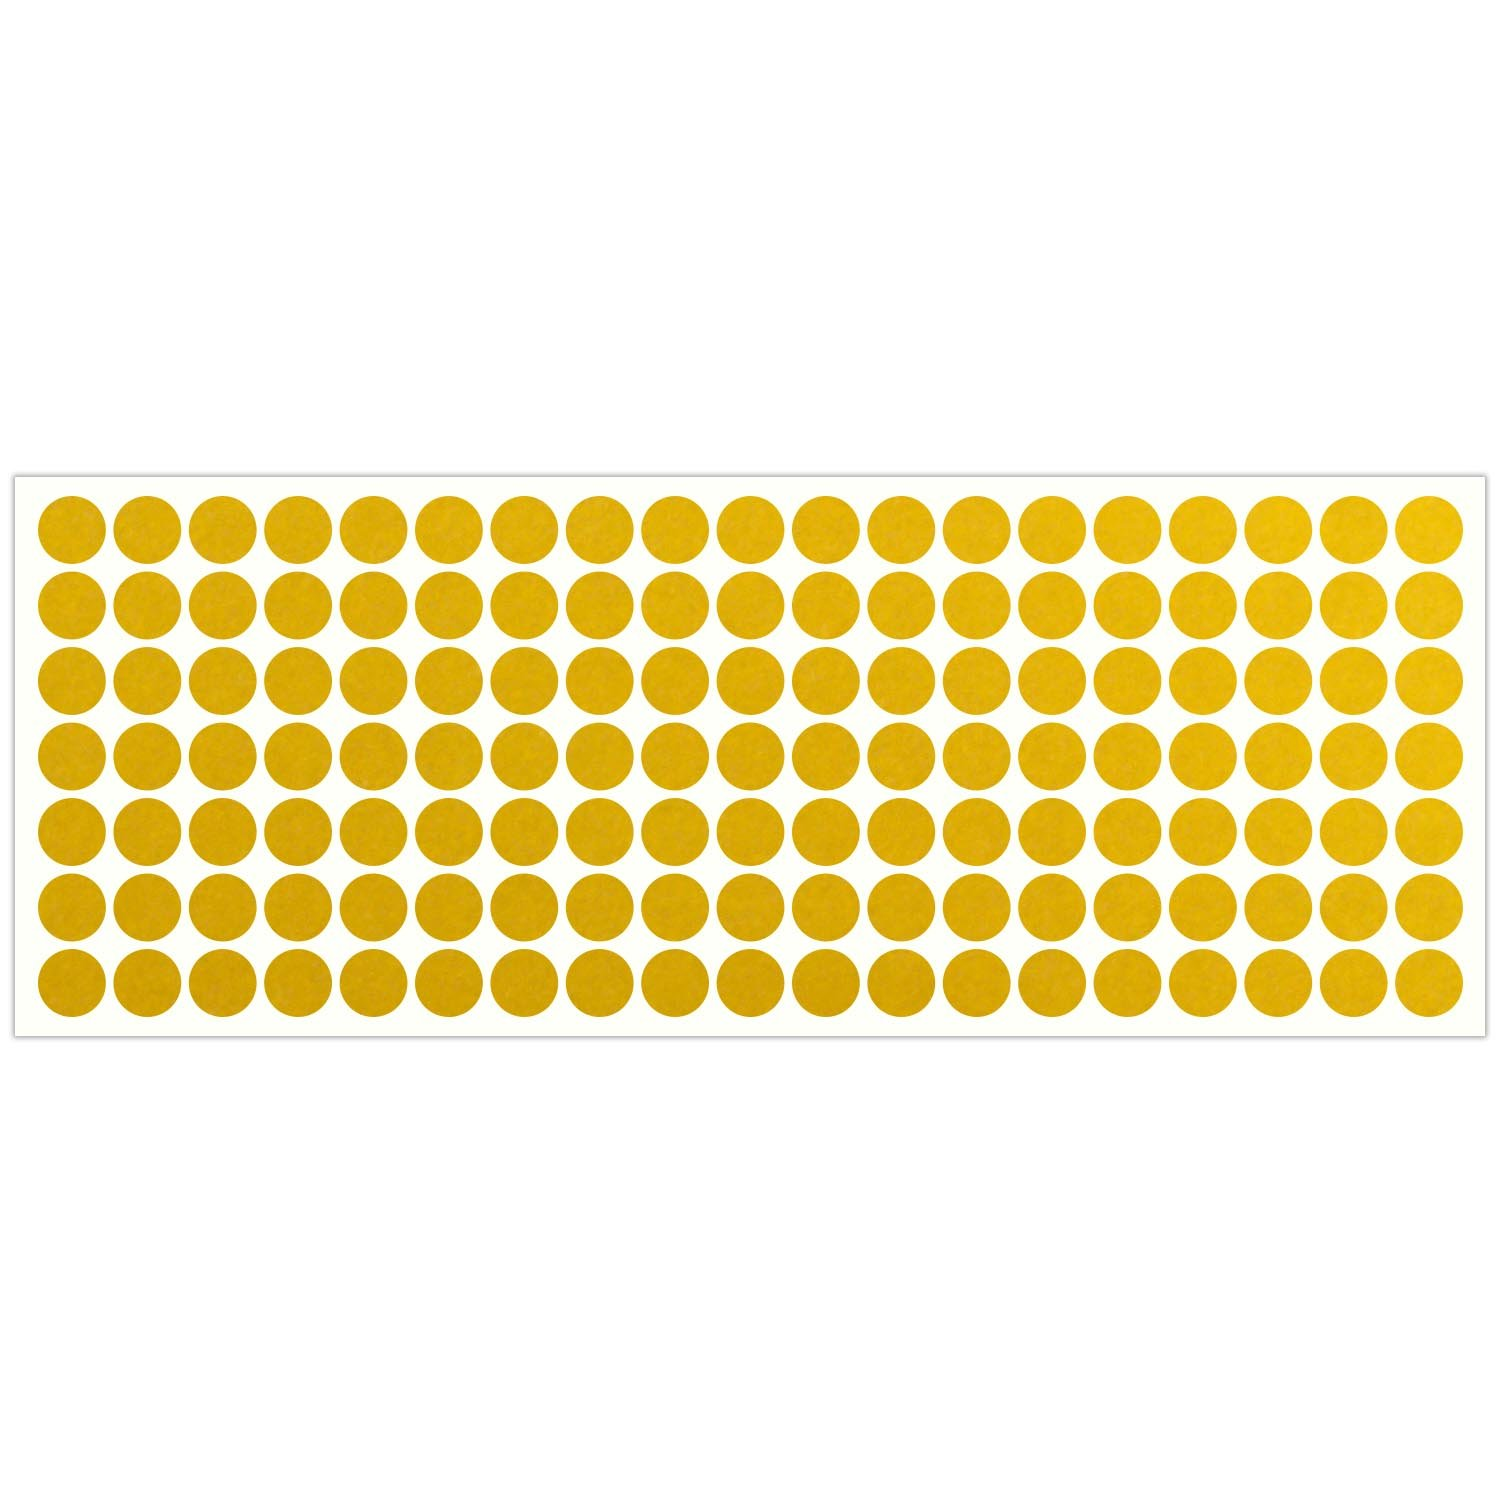 LiteMark Reflective Yellow 0.5 Inch Dot Sticker Decals for Helmets, Bicycles, Strollers, Wheelchairs and More - Pack of 133